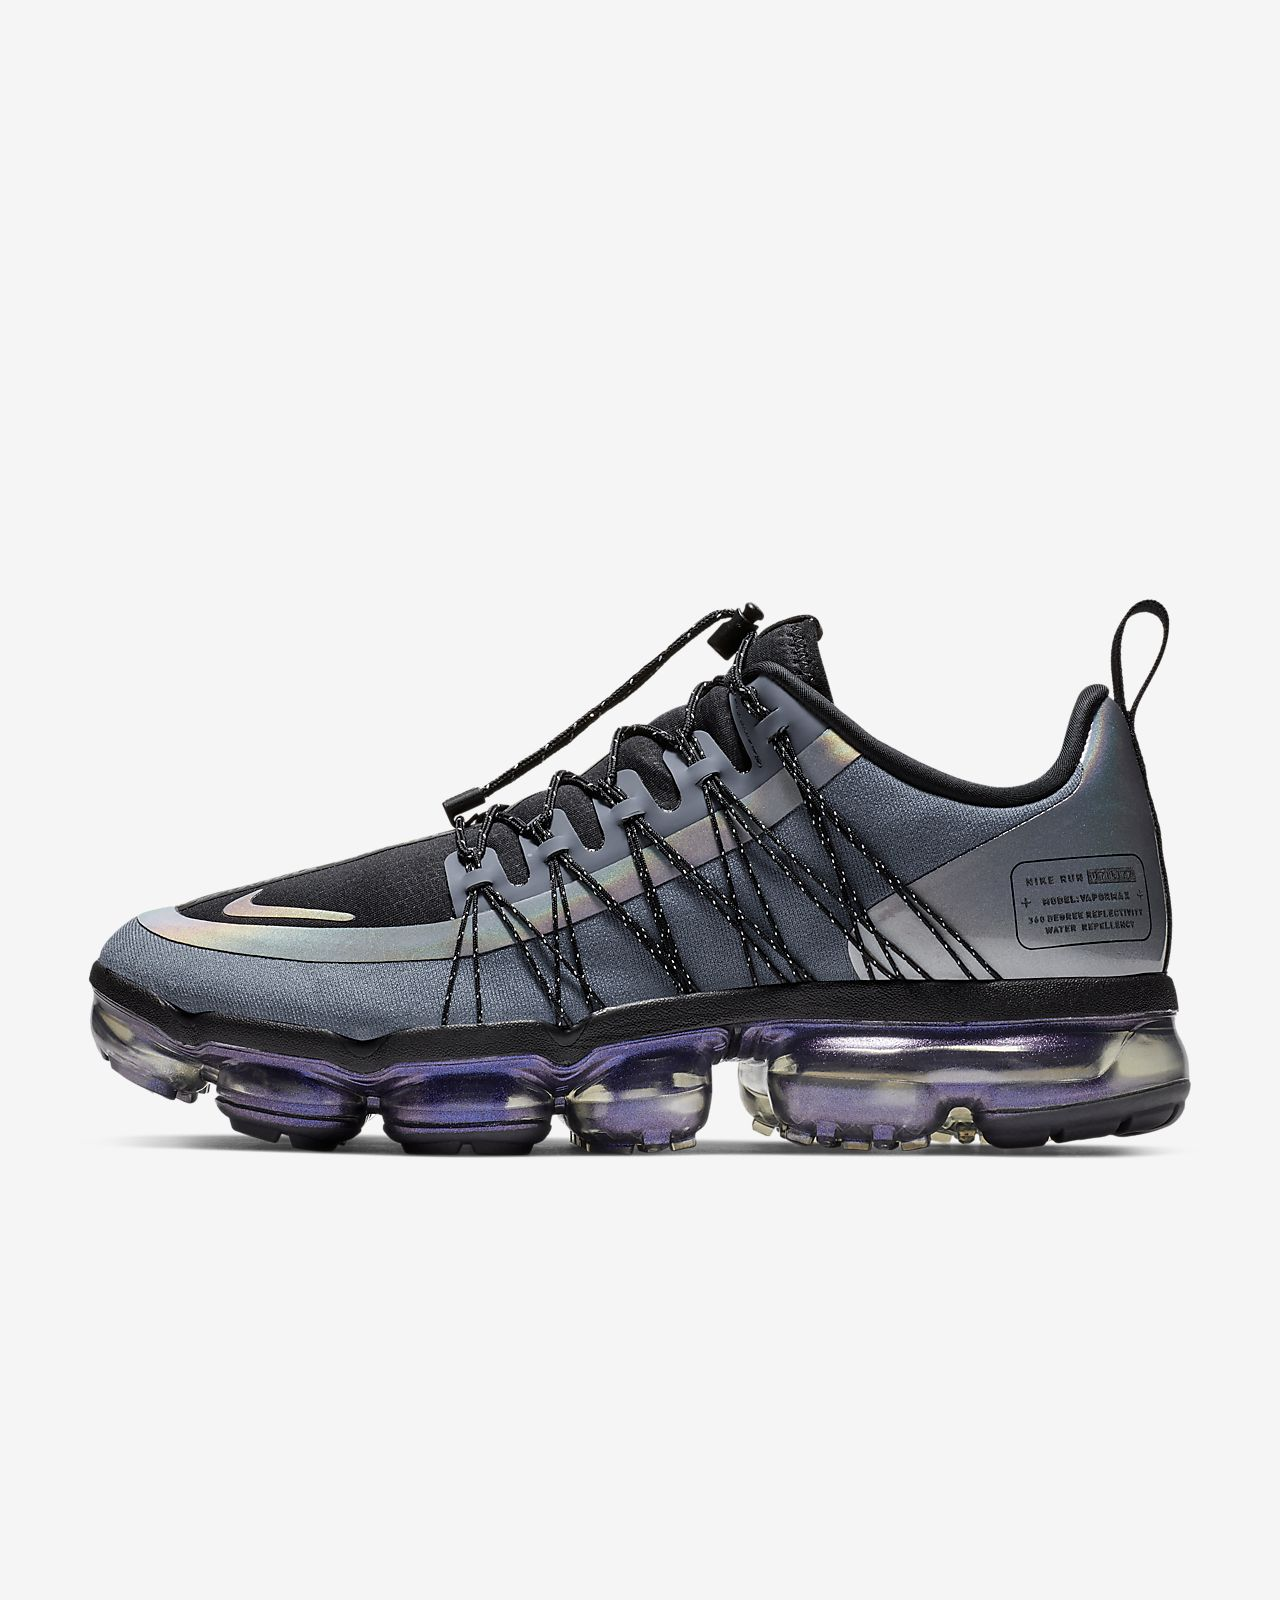 Nike Air VaporMax Run Utility 男子运动鞋